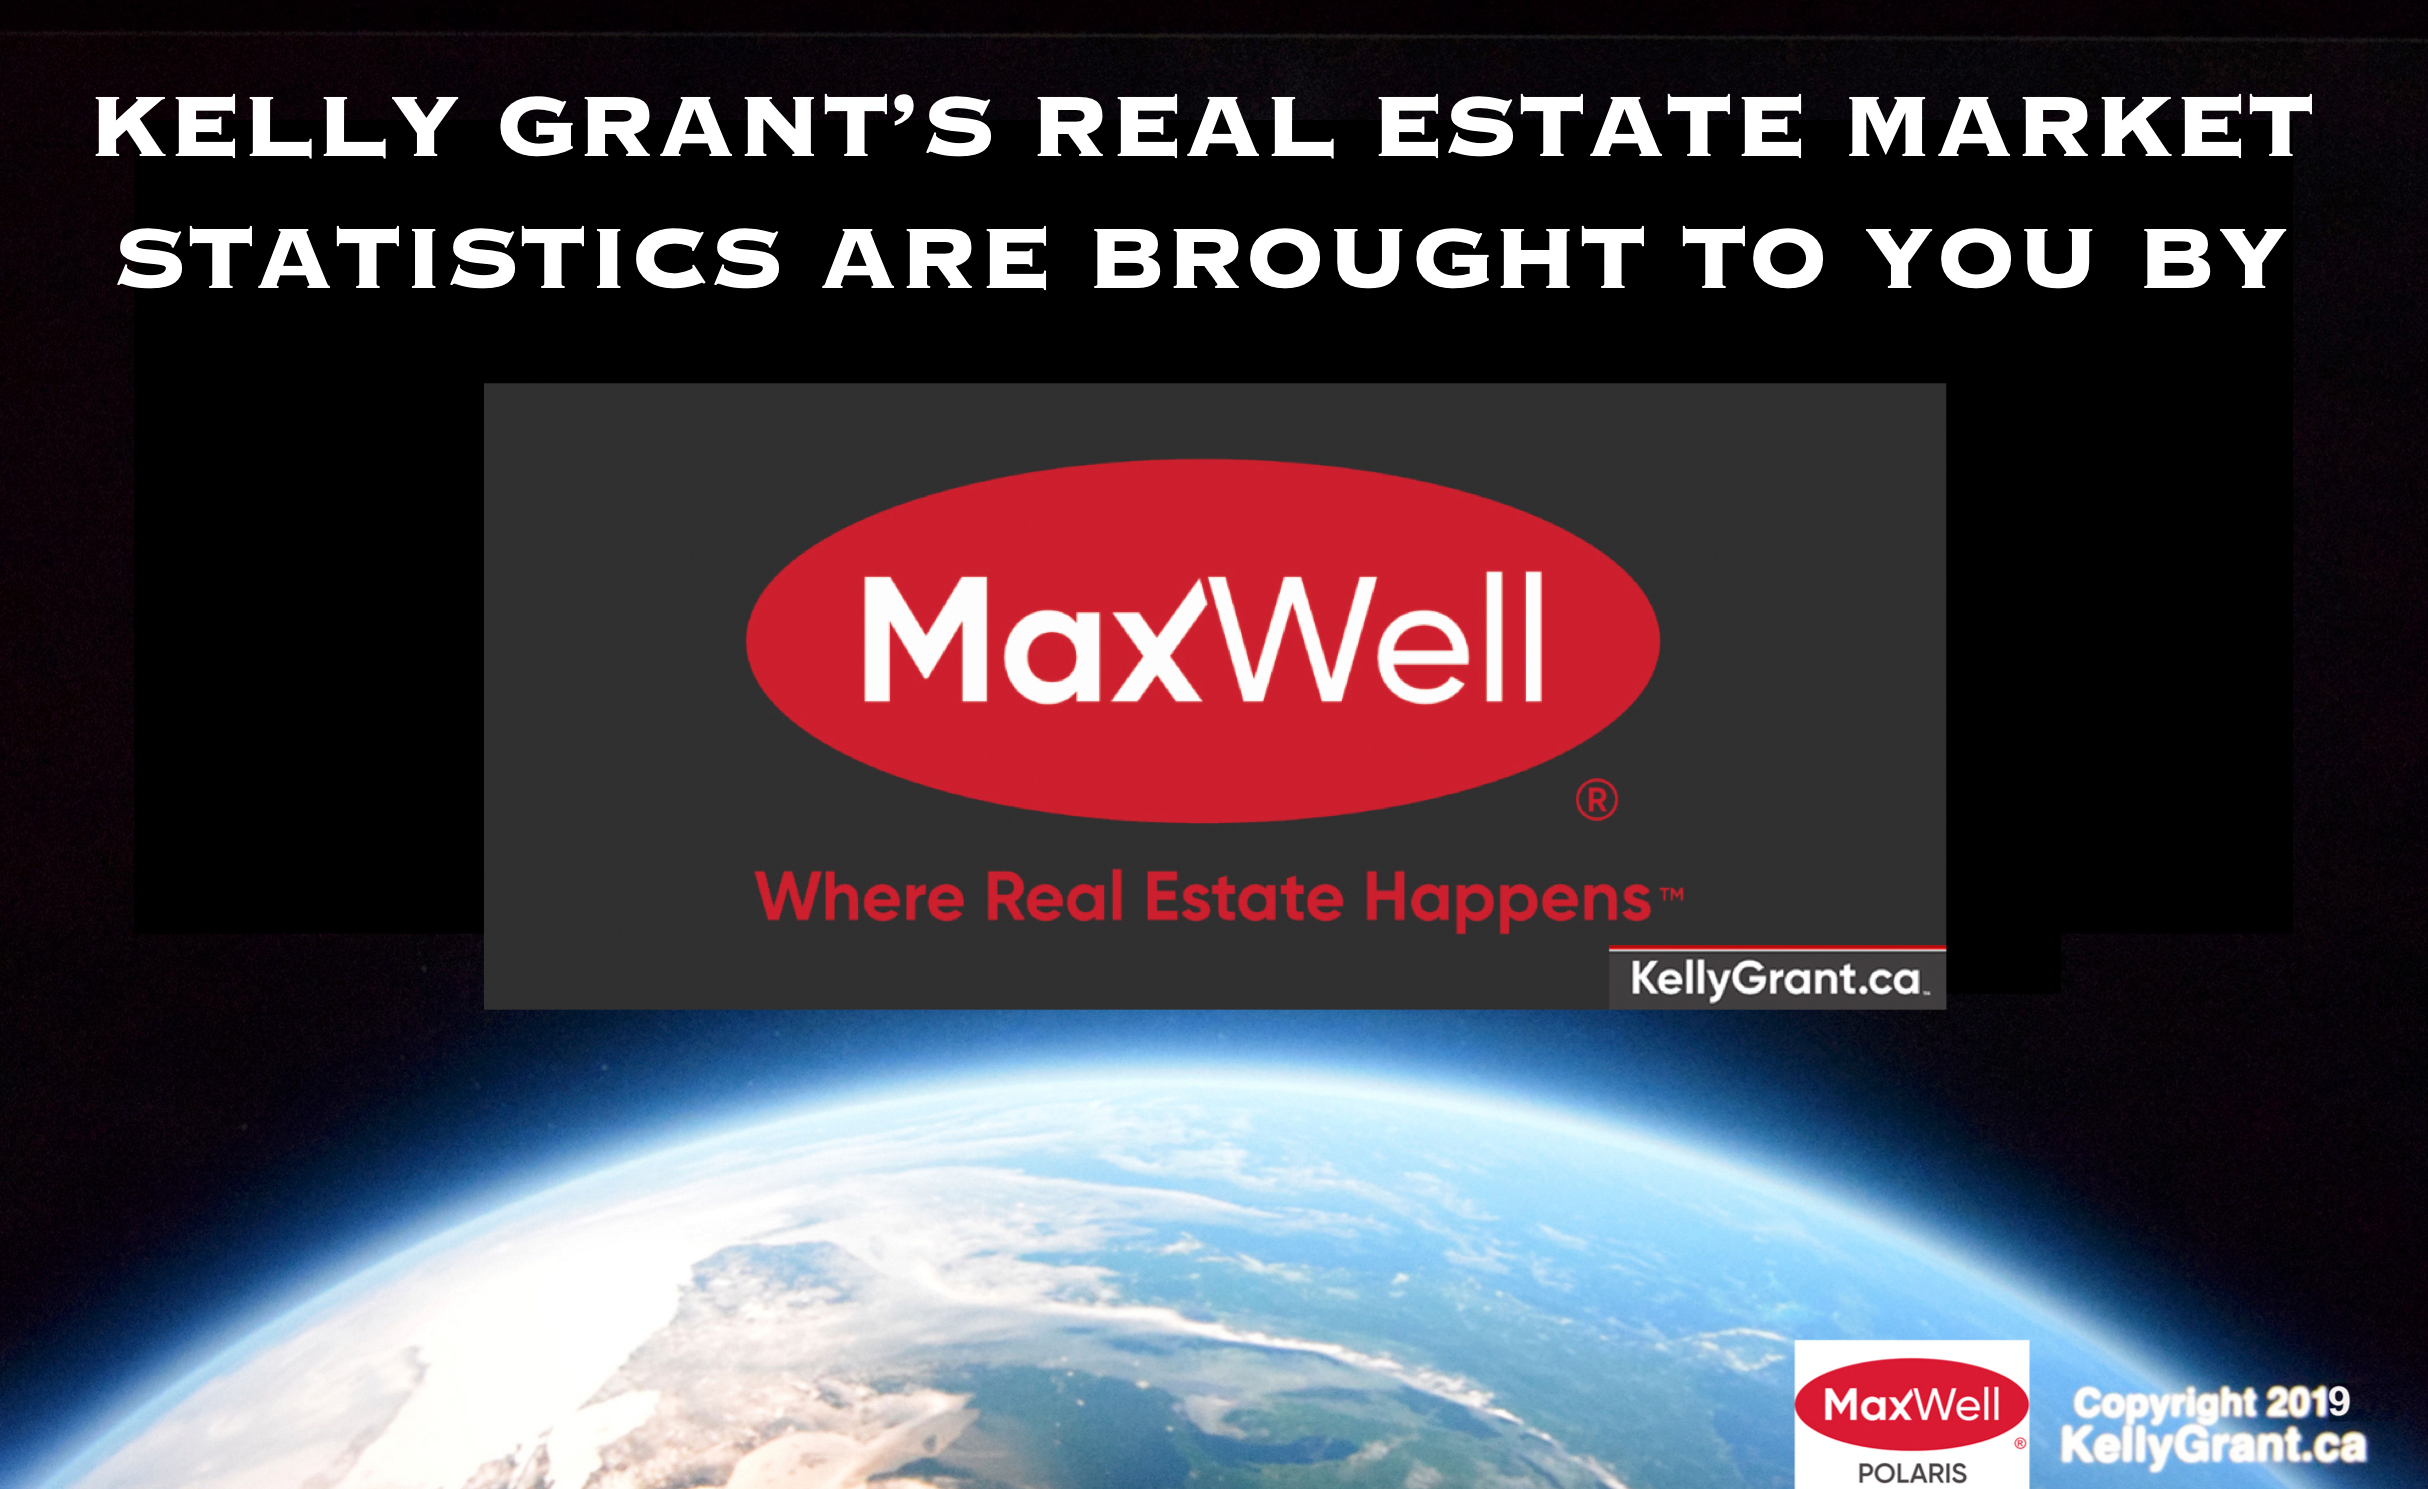 Kelly Grant's Market Statistics are Brought to you By MaxWell Realty